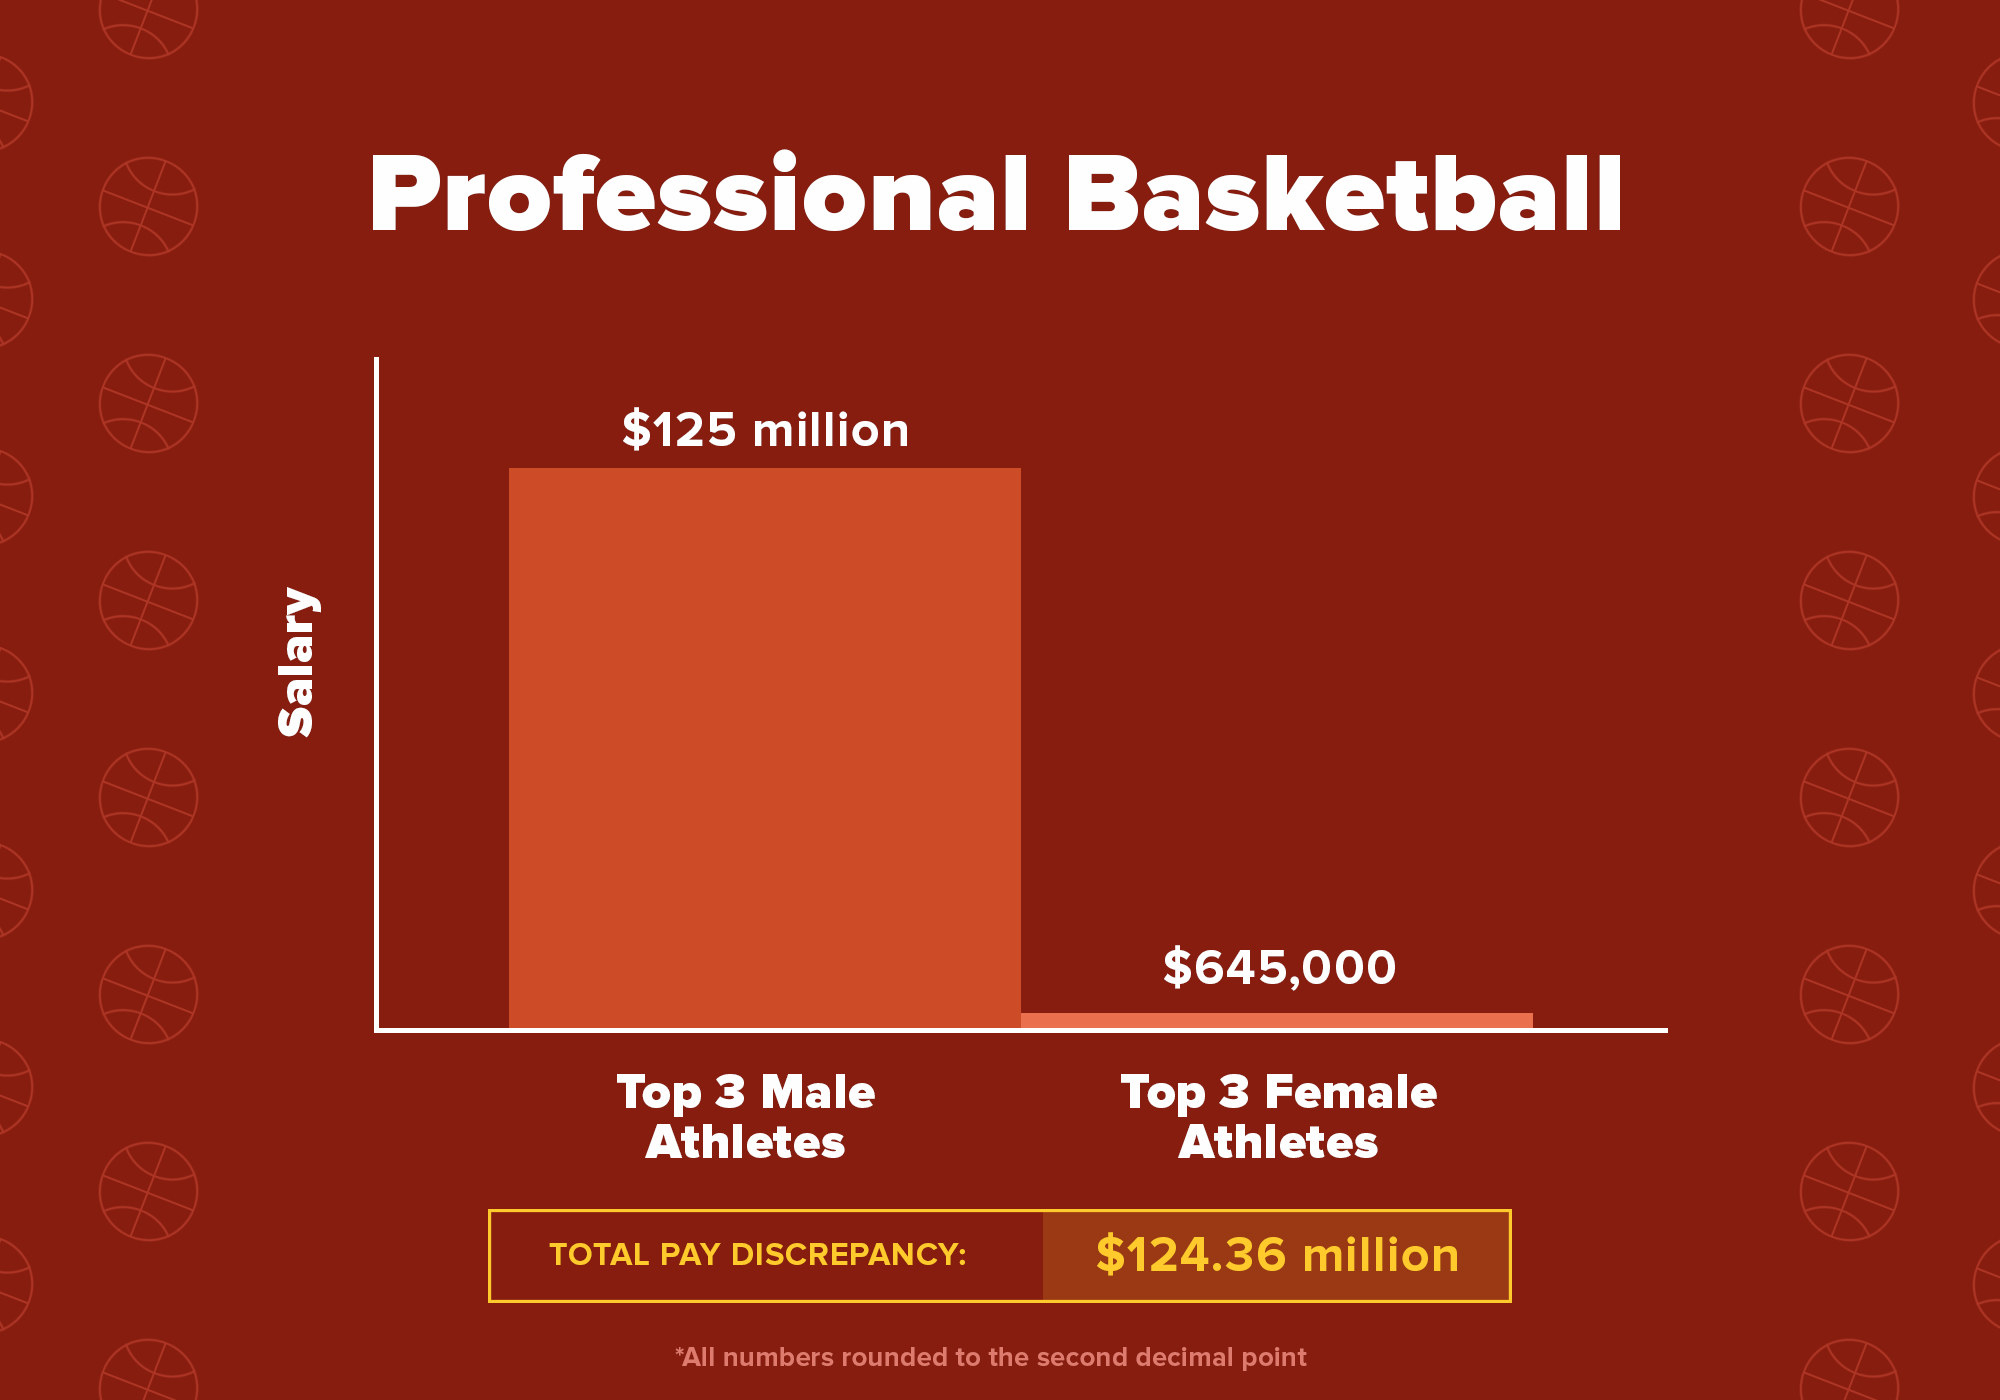 Chart showing the total pay discrepancy between these six basketball athletes is $124.36 million